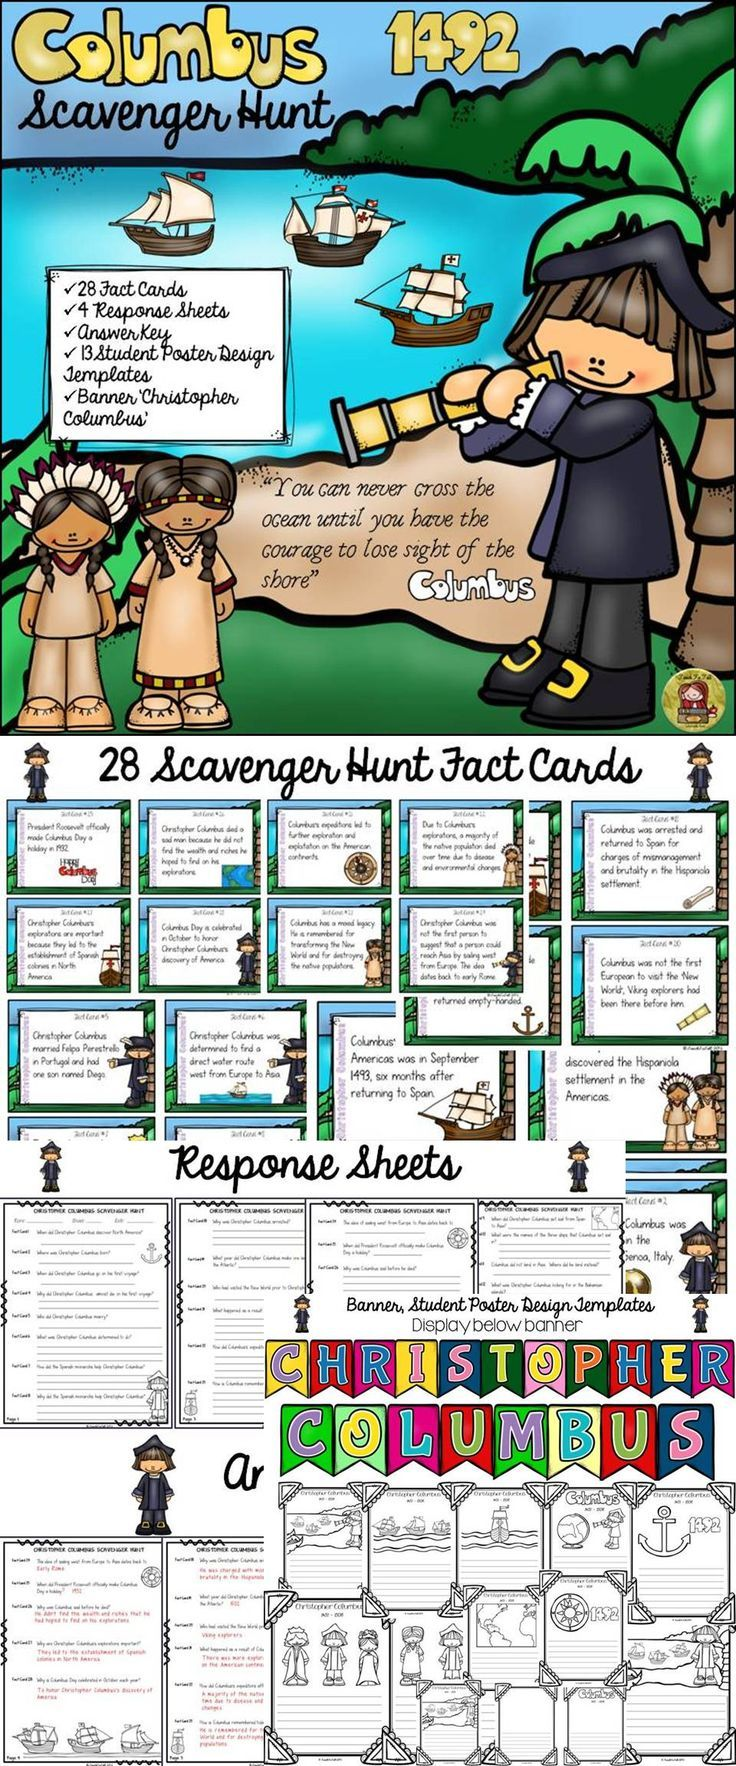 online shopping clothes in bangladesh Your students will love knowing about Christopher Columbus with this exciting Scavenger Hunt   The 28 facts cards  4 response sheets  and 13 student poster design templates will make learning about Christopher Columbus not just fun  but also meaningful  https   www teacherspayteachers com Product CHRISTOPHER COLUMBUS SCAVENGER HUNT FACT CARDS BANNER POSTER TEMPLATES 2121033